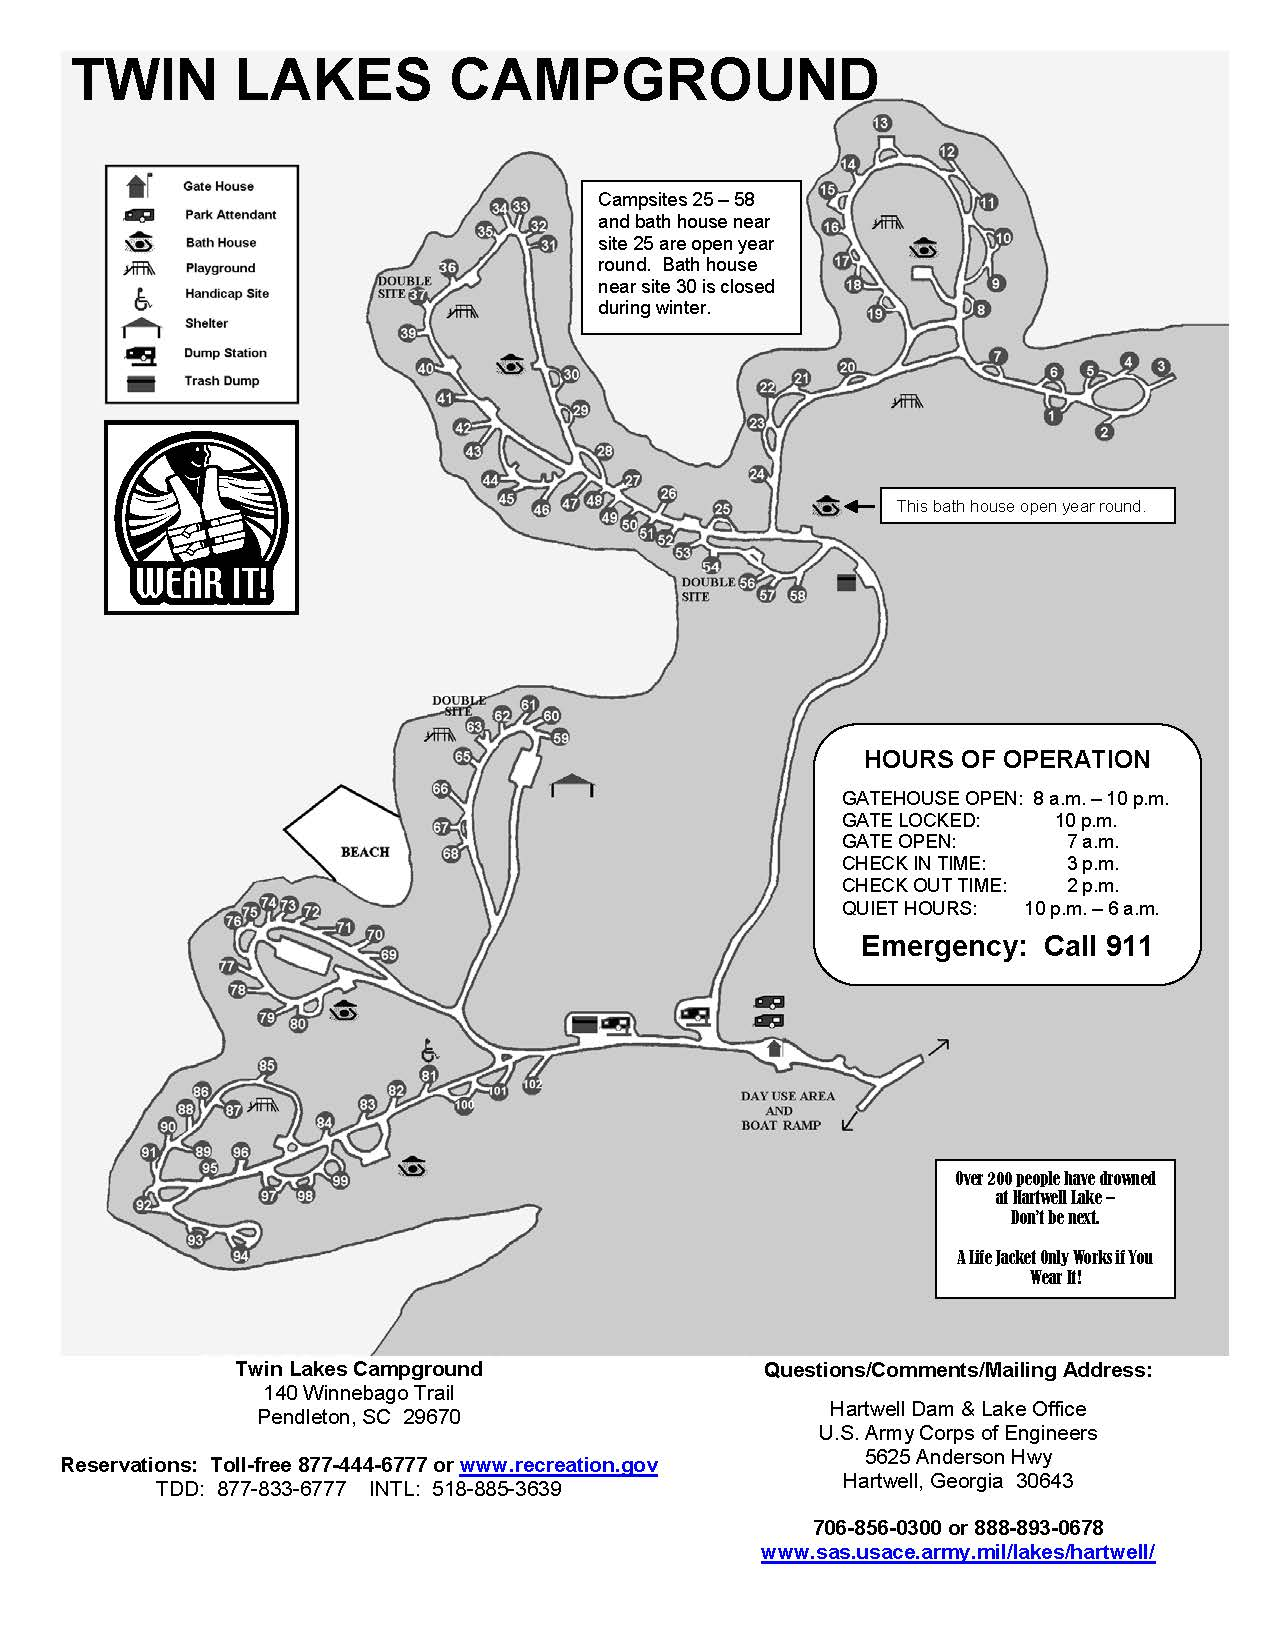 "Twin Lakes Campground Map Savannah District > About > Divisions and Offices > Operations "" title=""Twin Lakes Campground Map Savannah District > About > Divisions and Offices > Operations "" width=""200″ height=""200″> <img src="